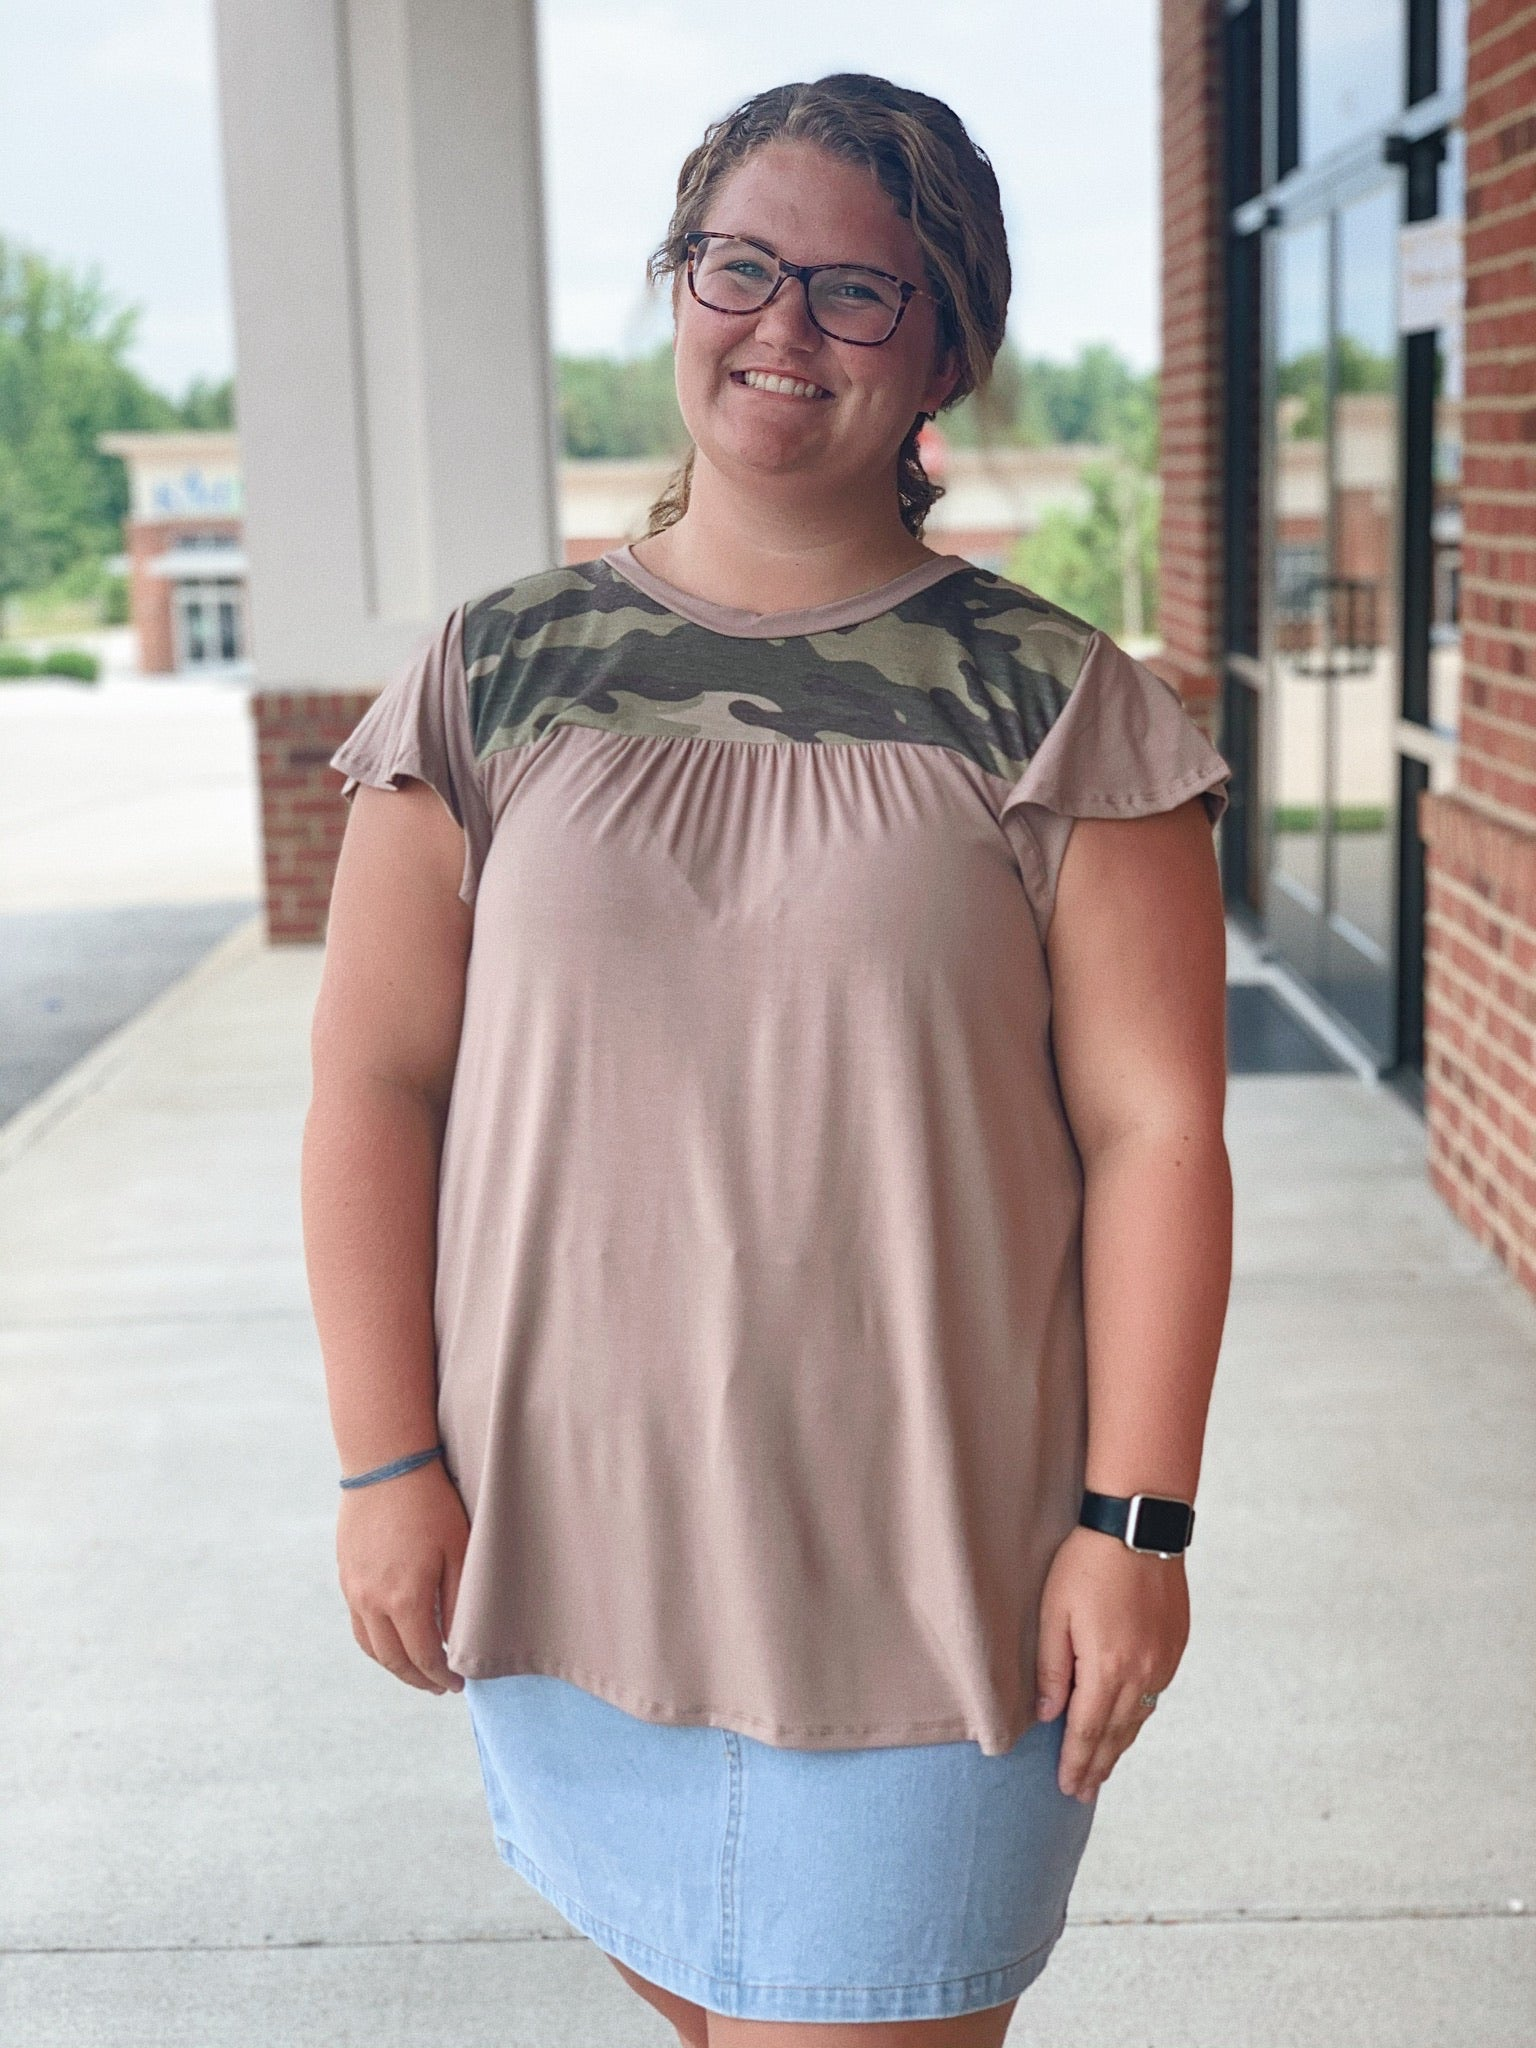 The Emily Top in Camo/Brown